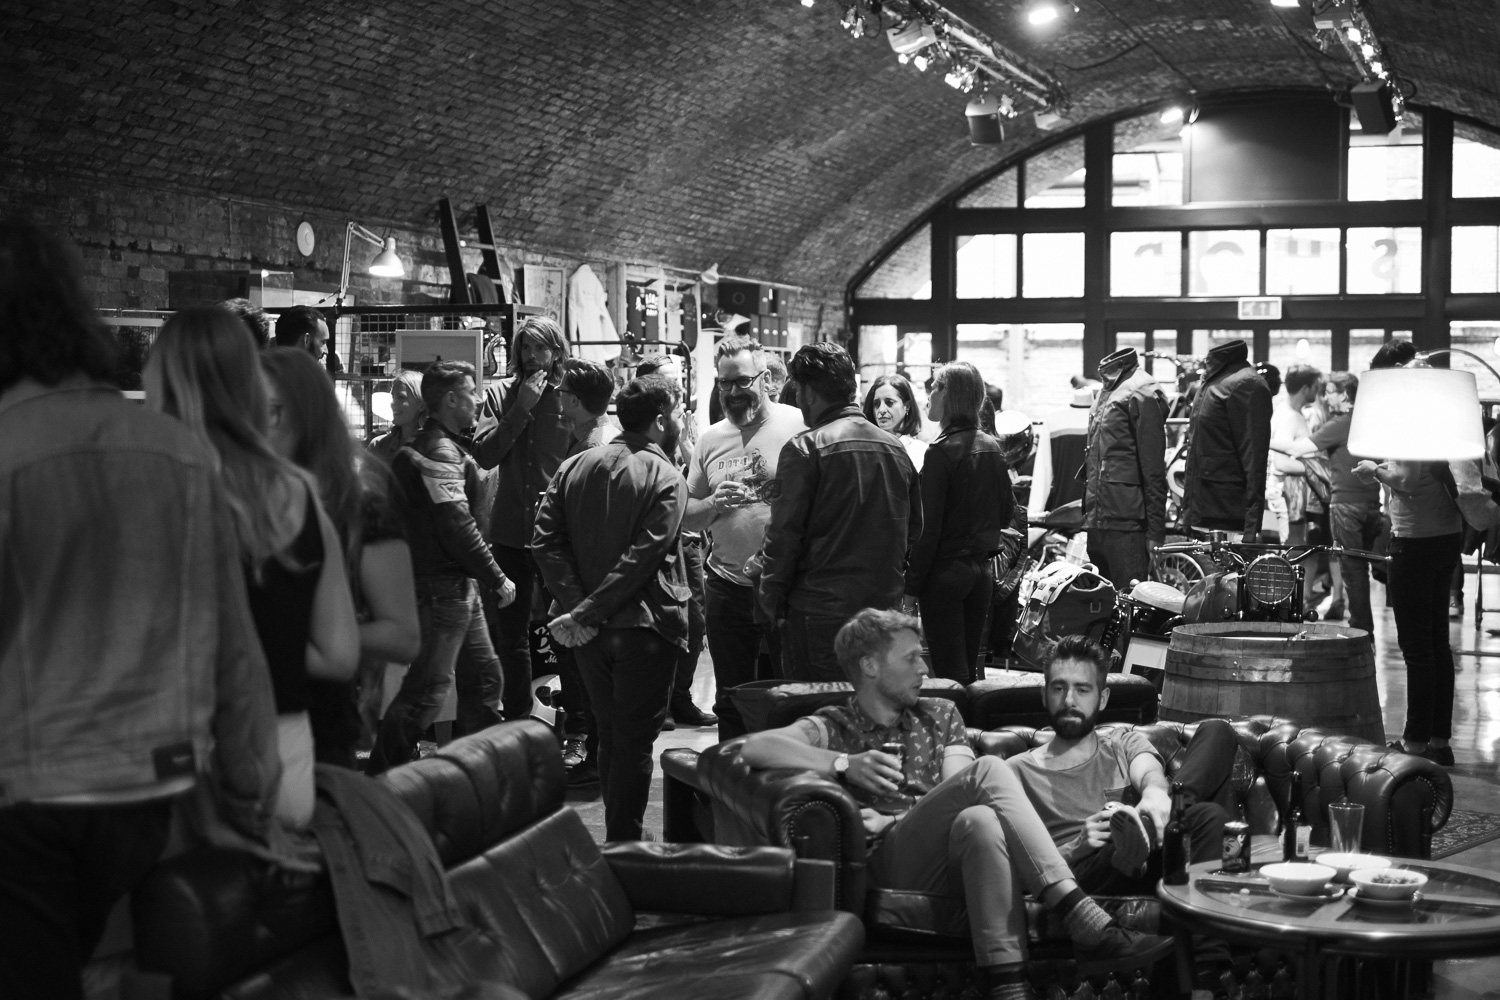 An image from the Eversholt Jacket launch party.